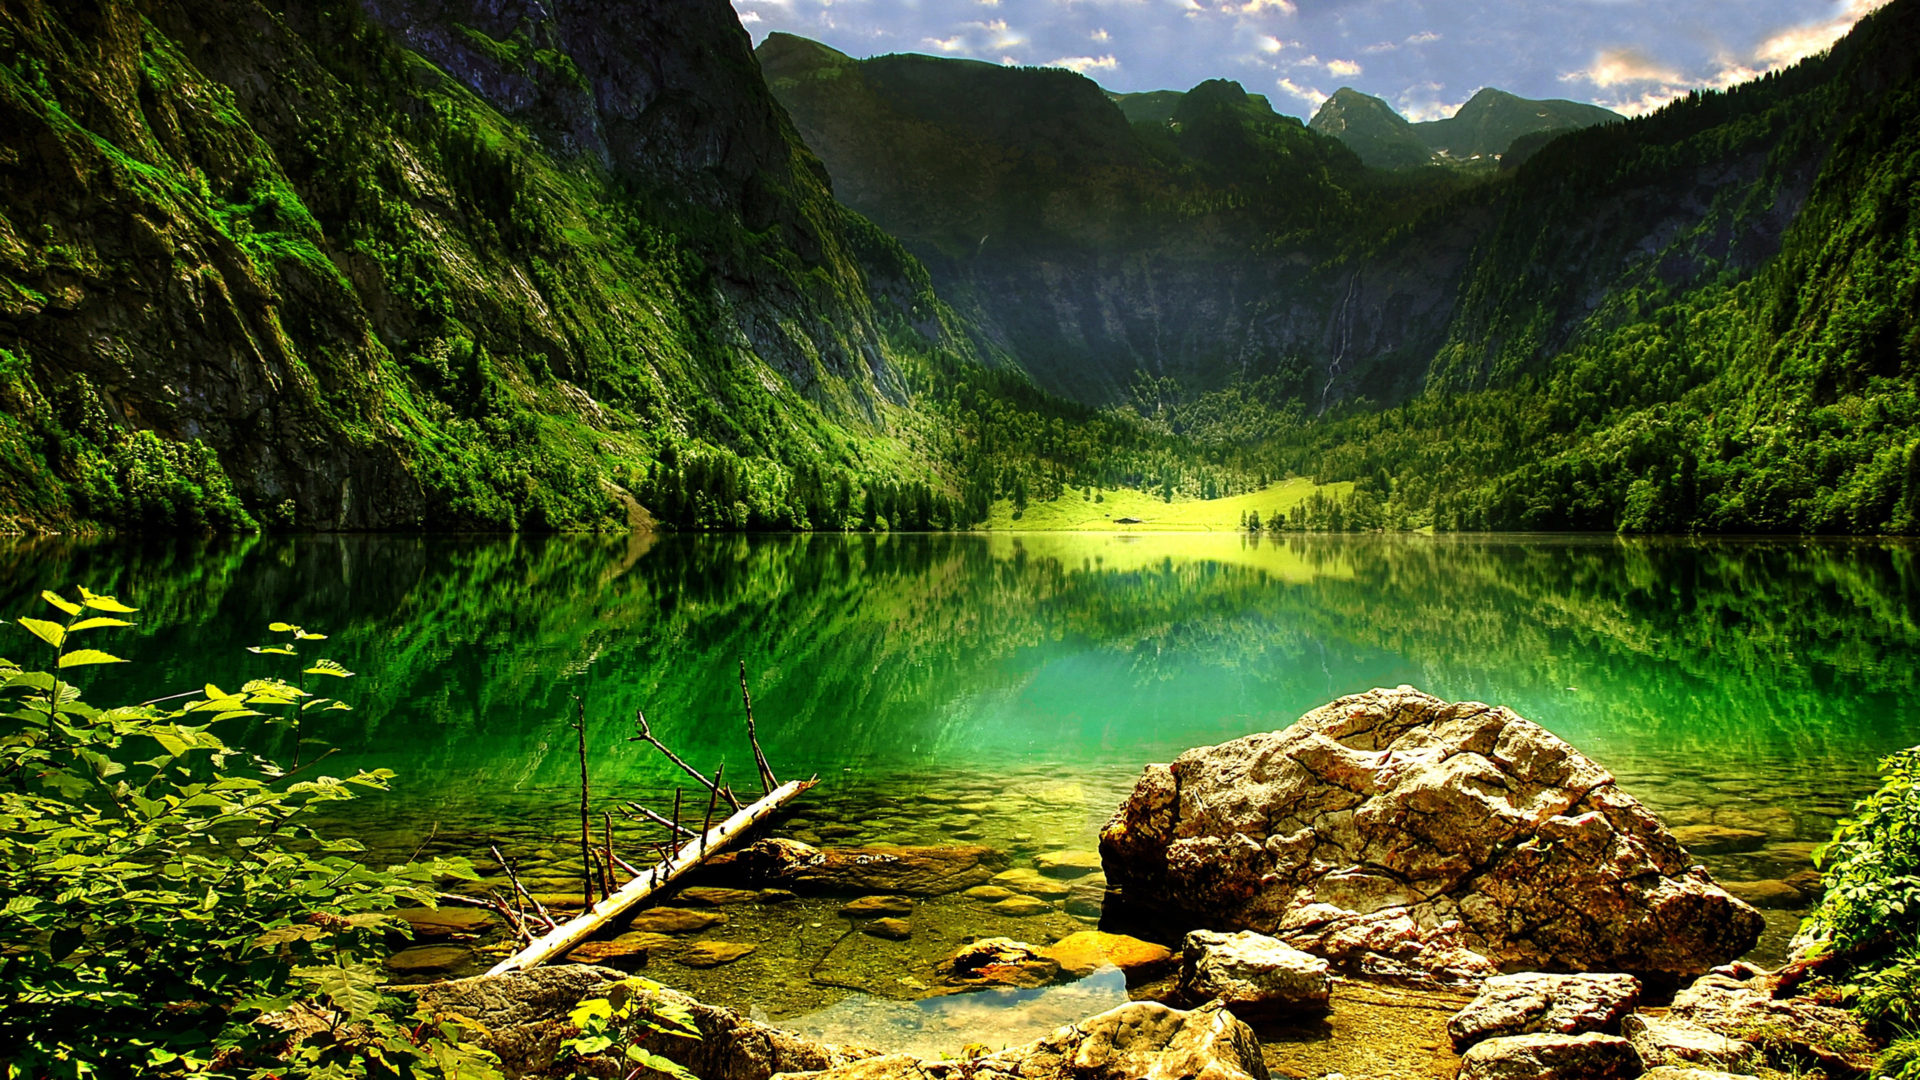 Wallpaper Hp Iphone X K 246 Nigssee Mountain Lake In The Bavarian Alps Lake In